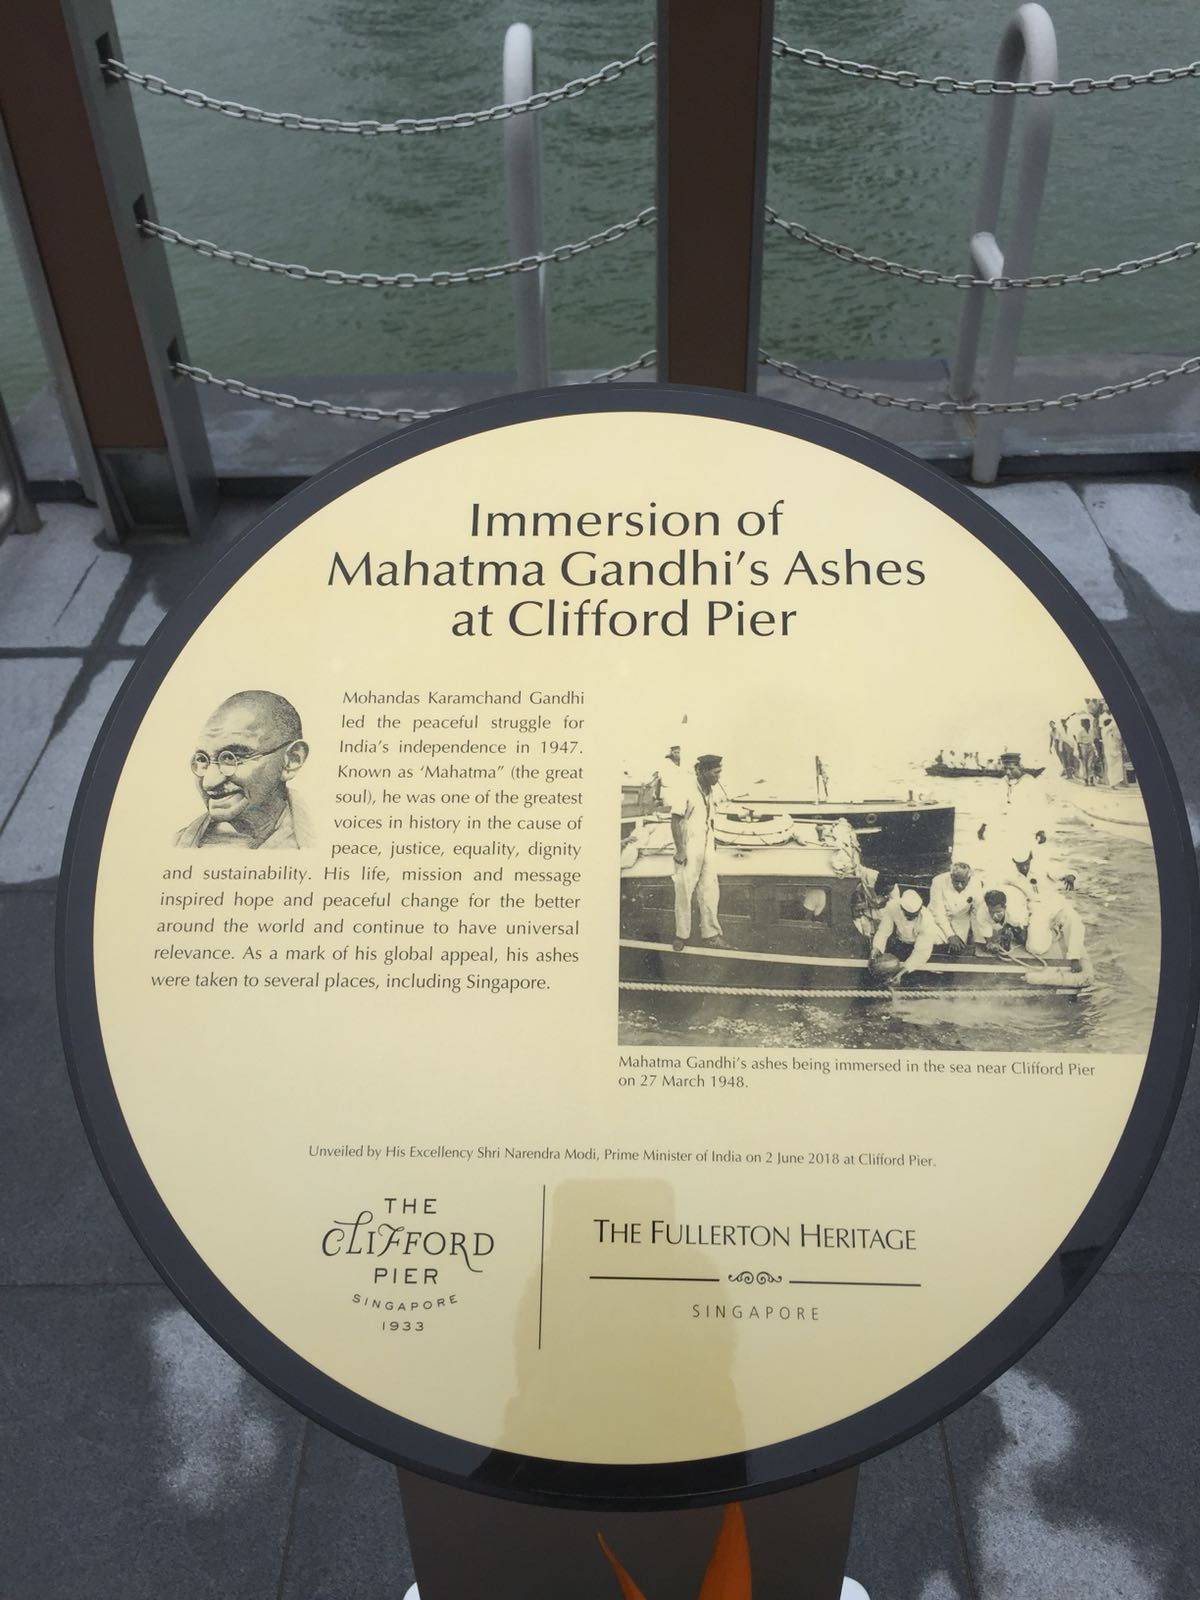 The board containing the details about the immersion of Mahatma Gandhi's ashes at Clifford Pier in Singapore.